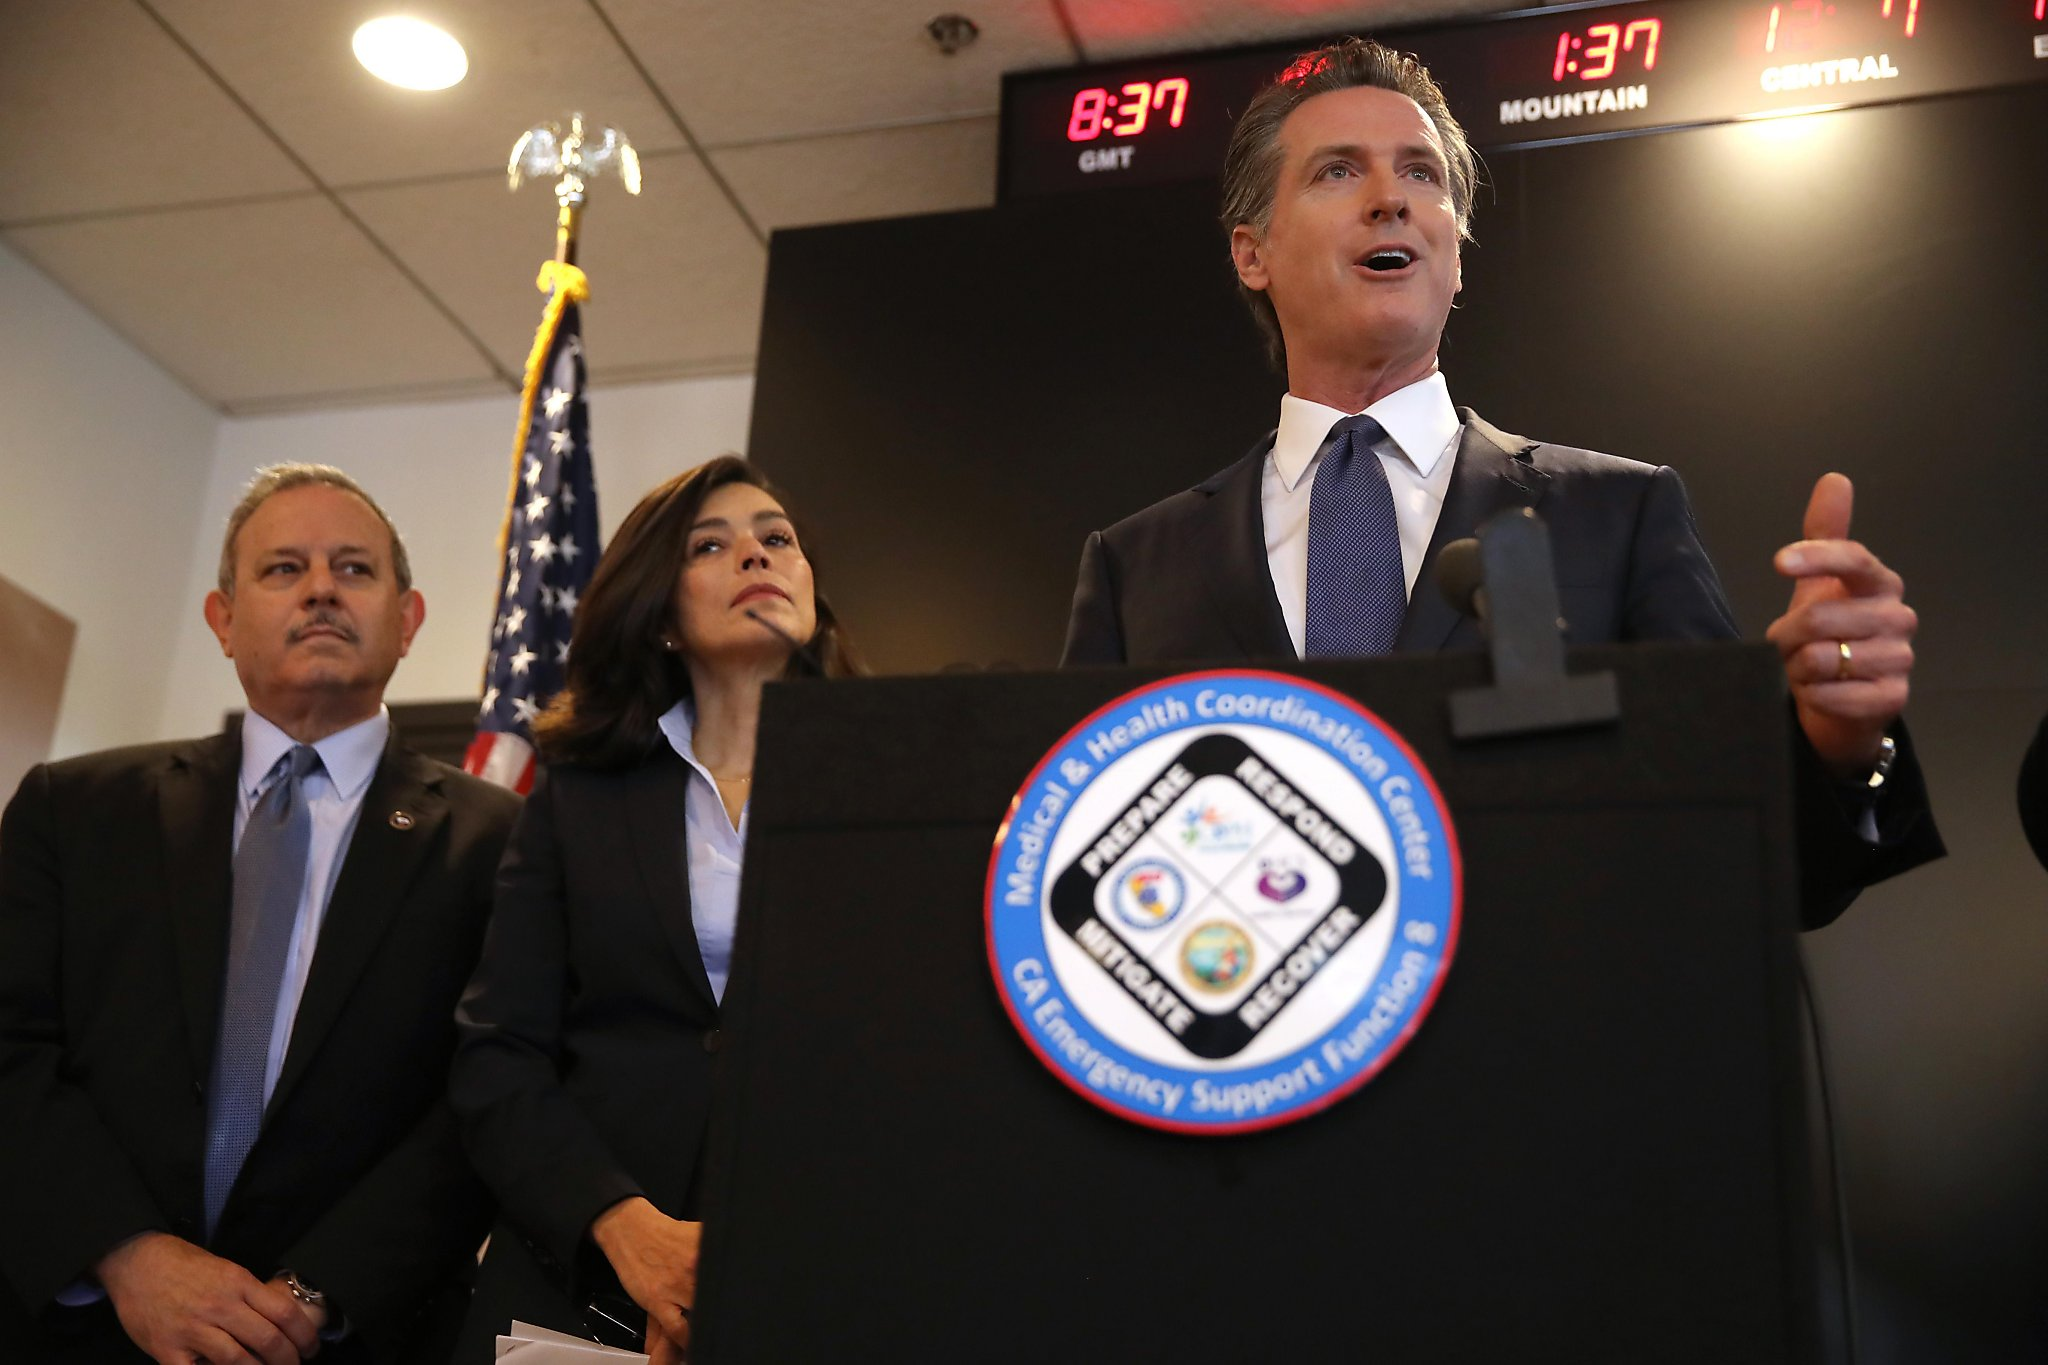 8,400 people in Calif. are being monitored for coronavirus, Gov. Newsom says